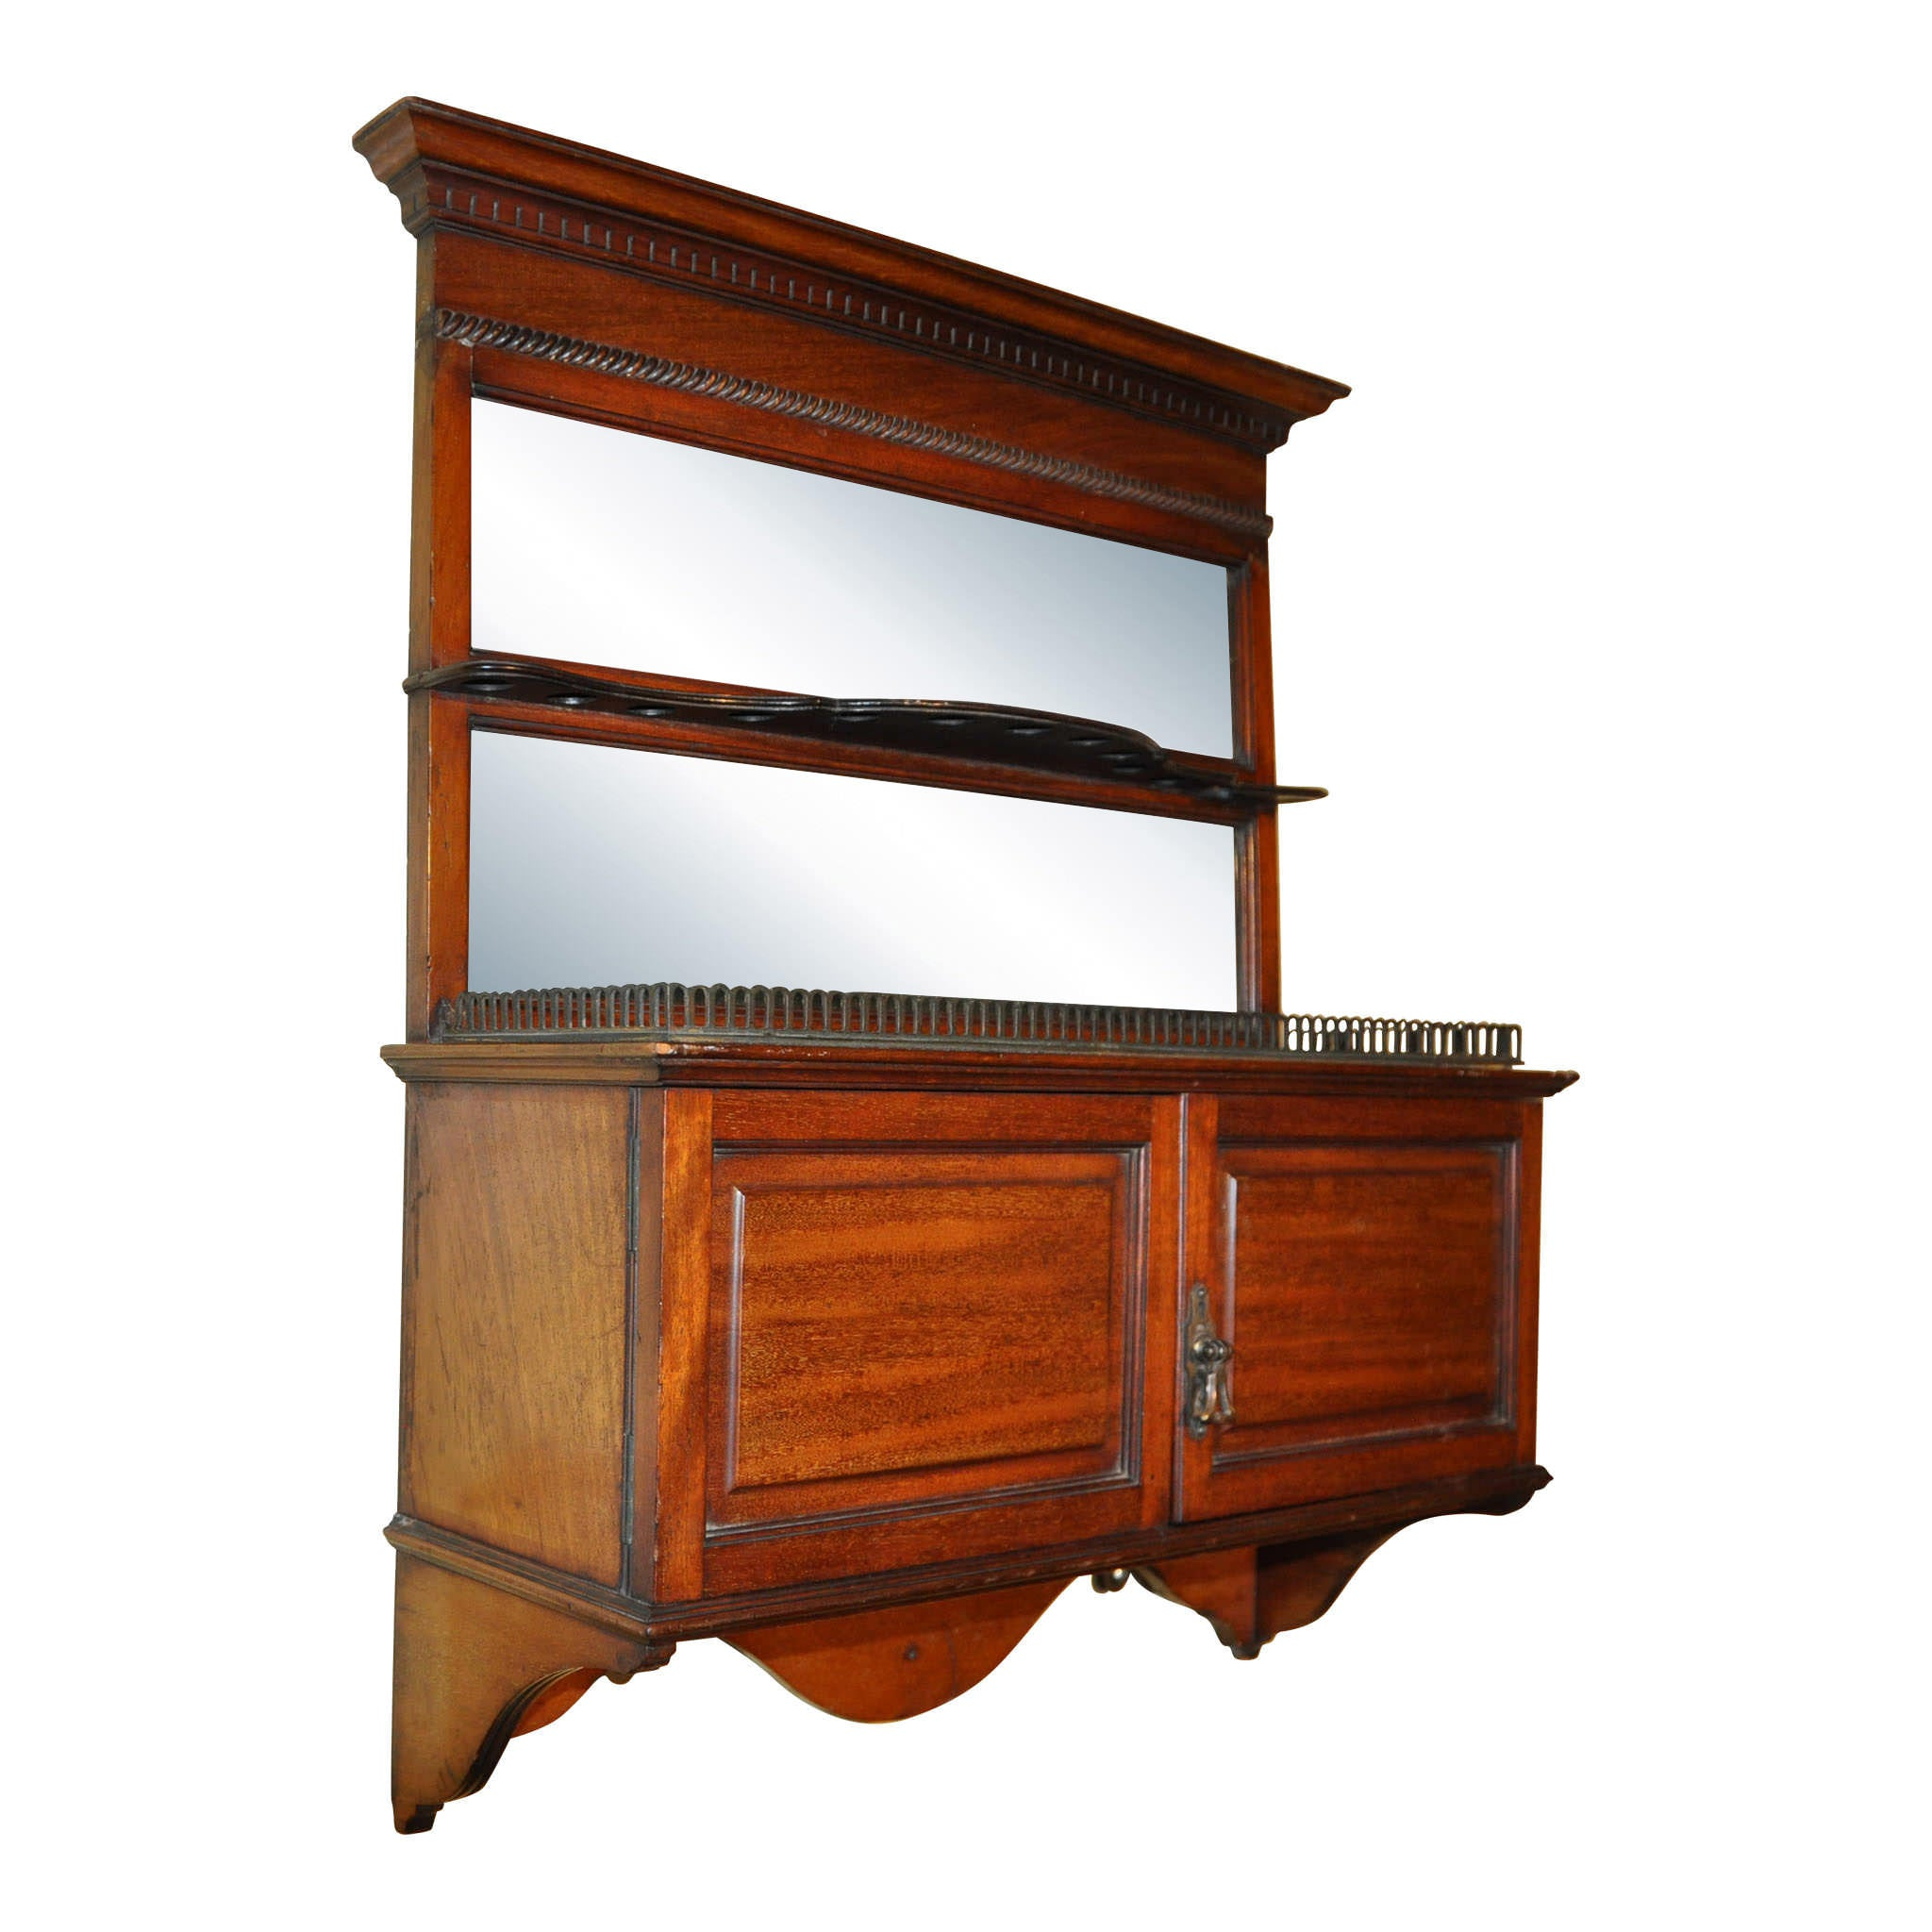 Tobacco Wall Cabinet with Pipe Rack and Mirrors